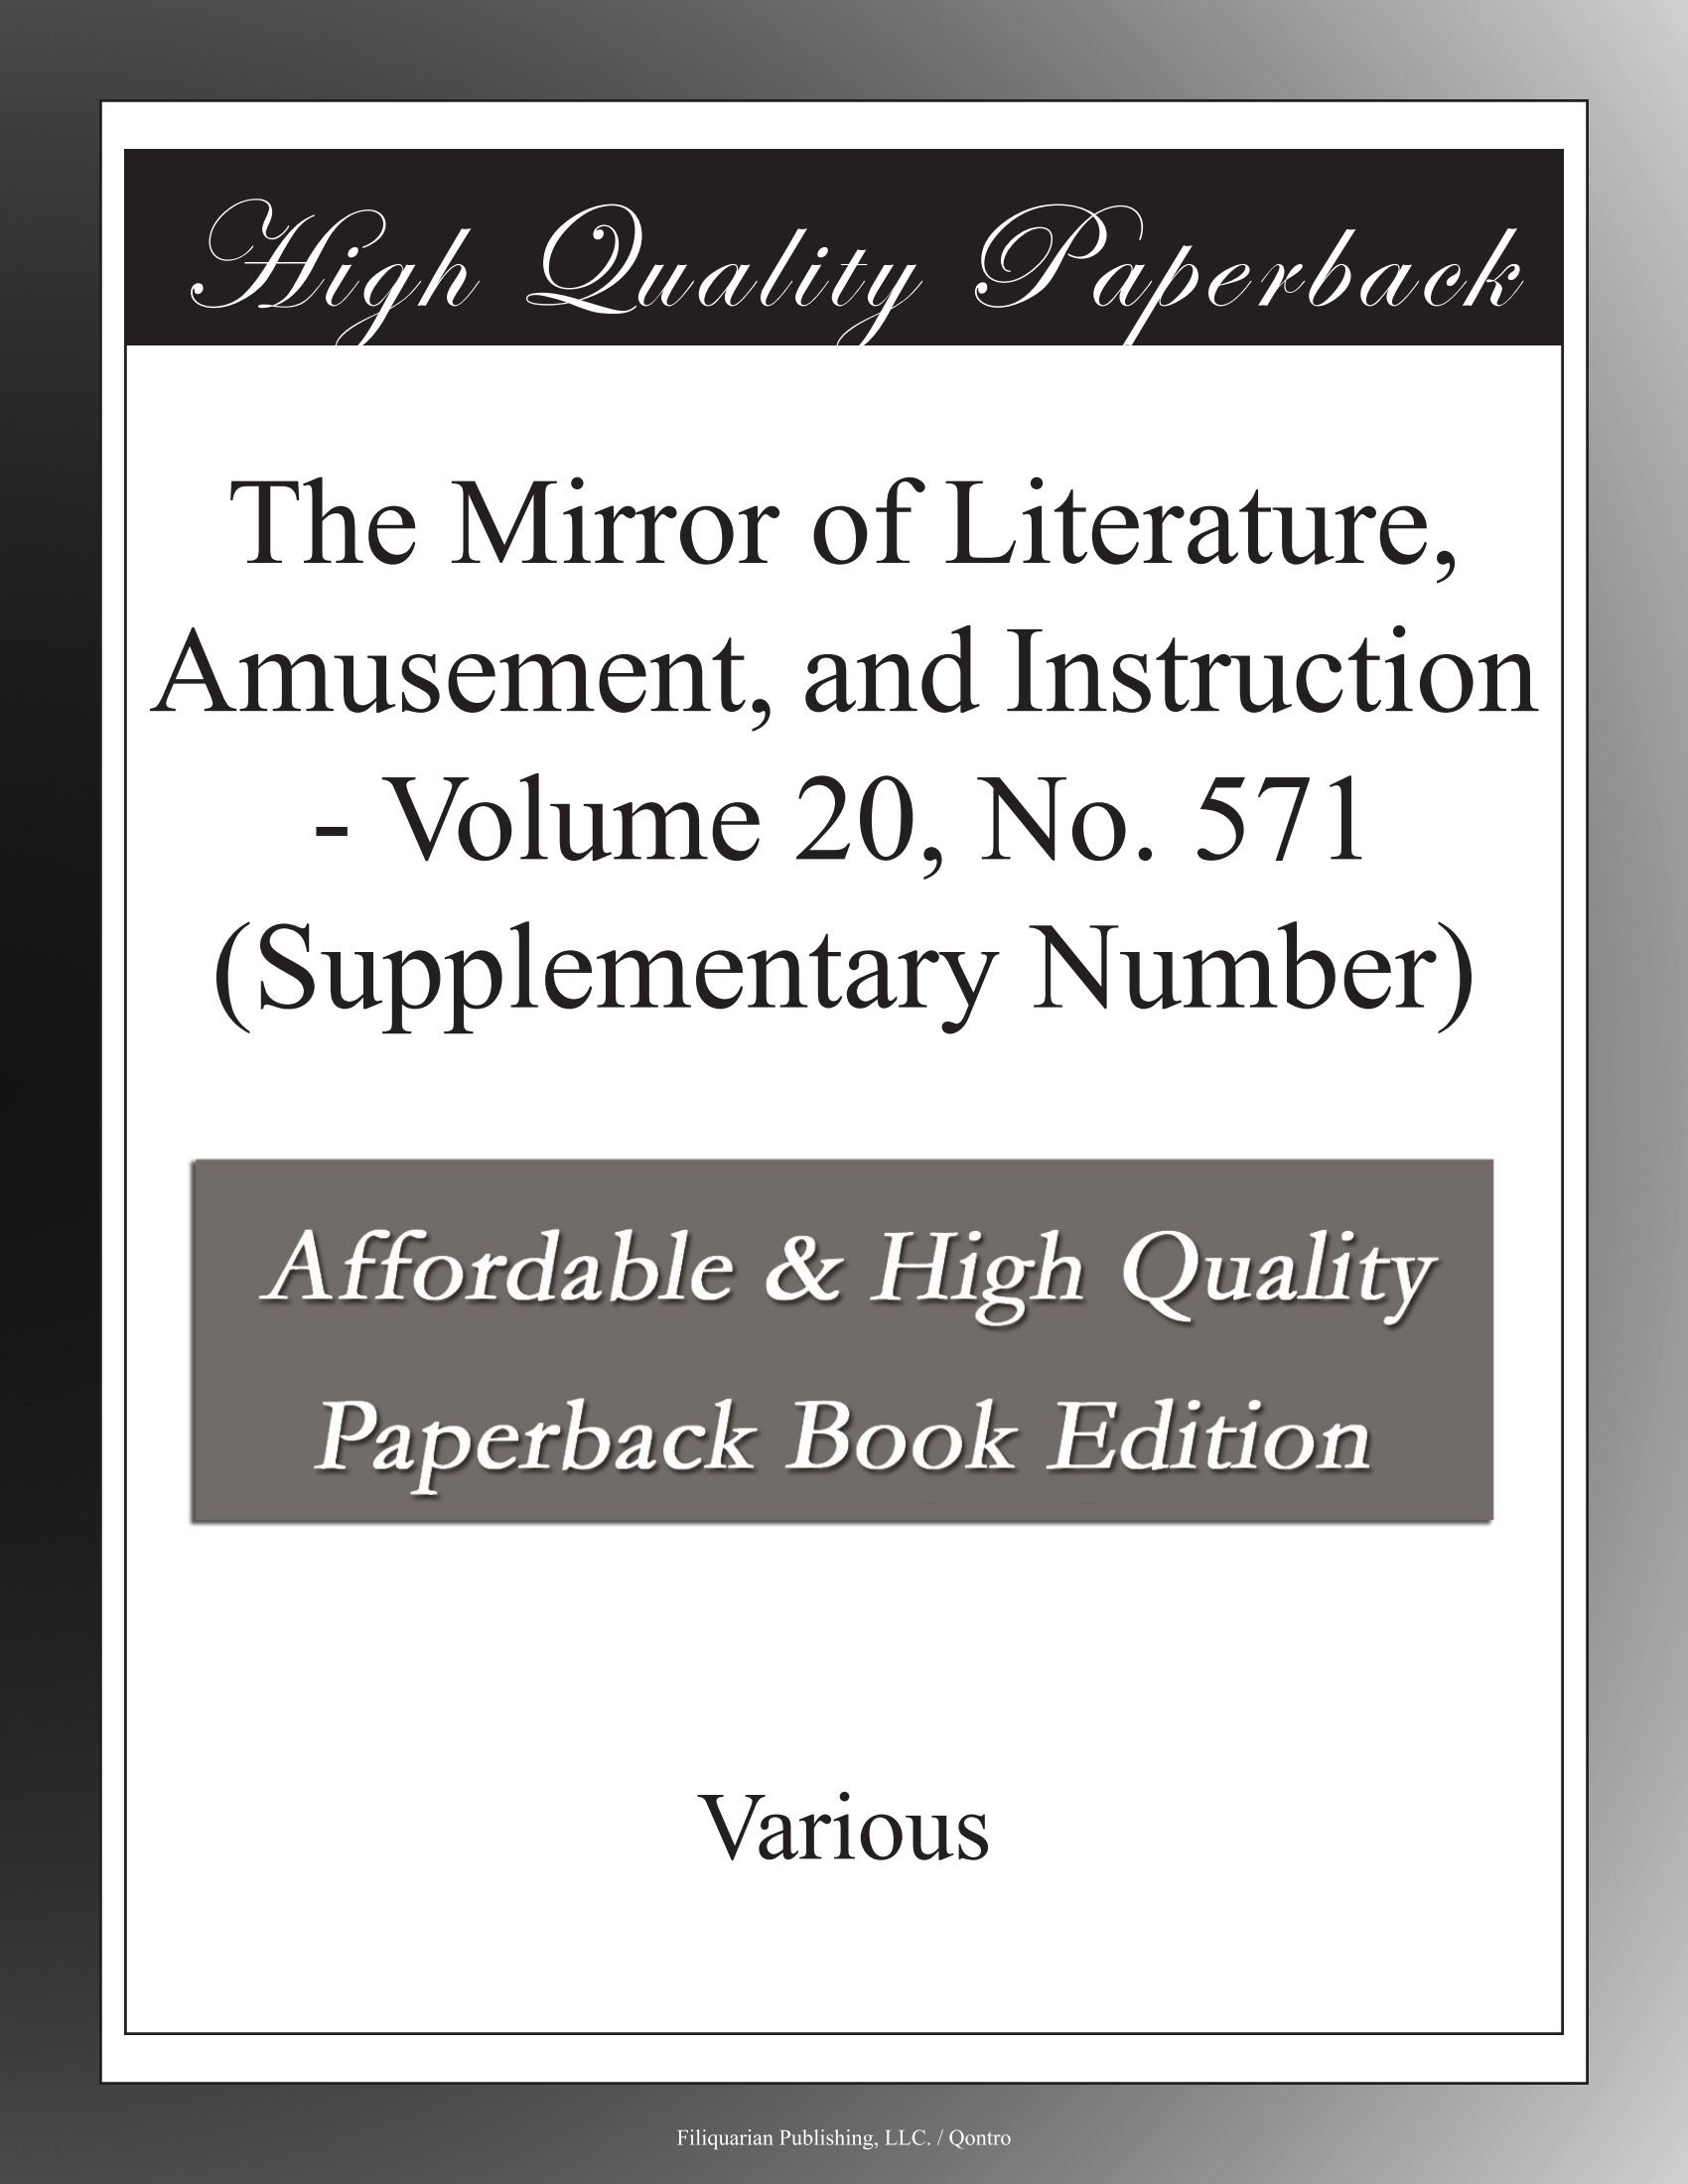 The Mirror of Literature, Amusement, and Instruction - Volume 20, No. 571 (Supplementary Number) PDF